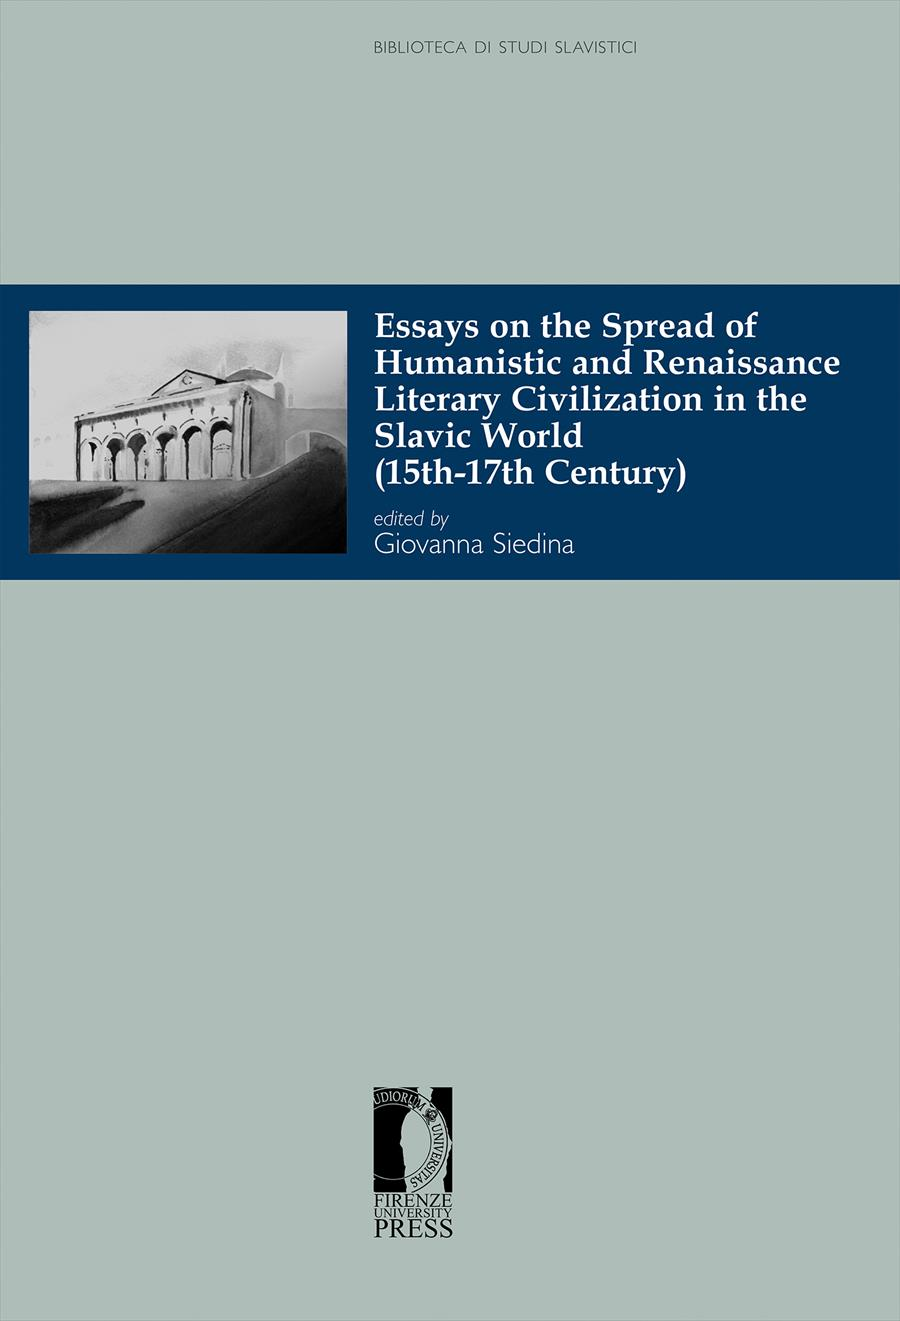 Essays on the Spread of Humanistic and Renaissance Literary Civilization in the Slavic World (15th-17th Century)